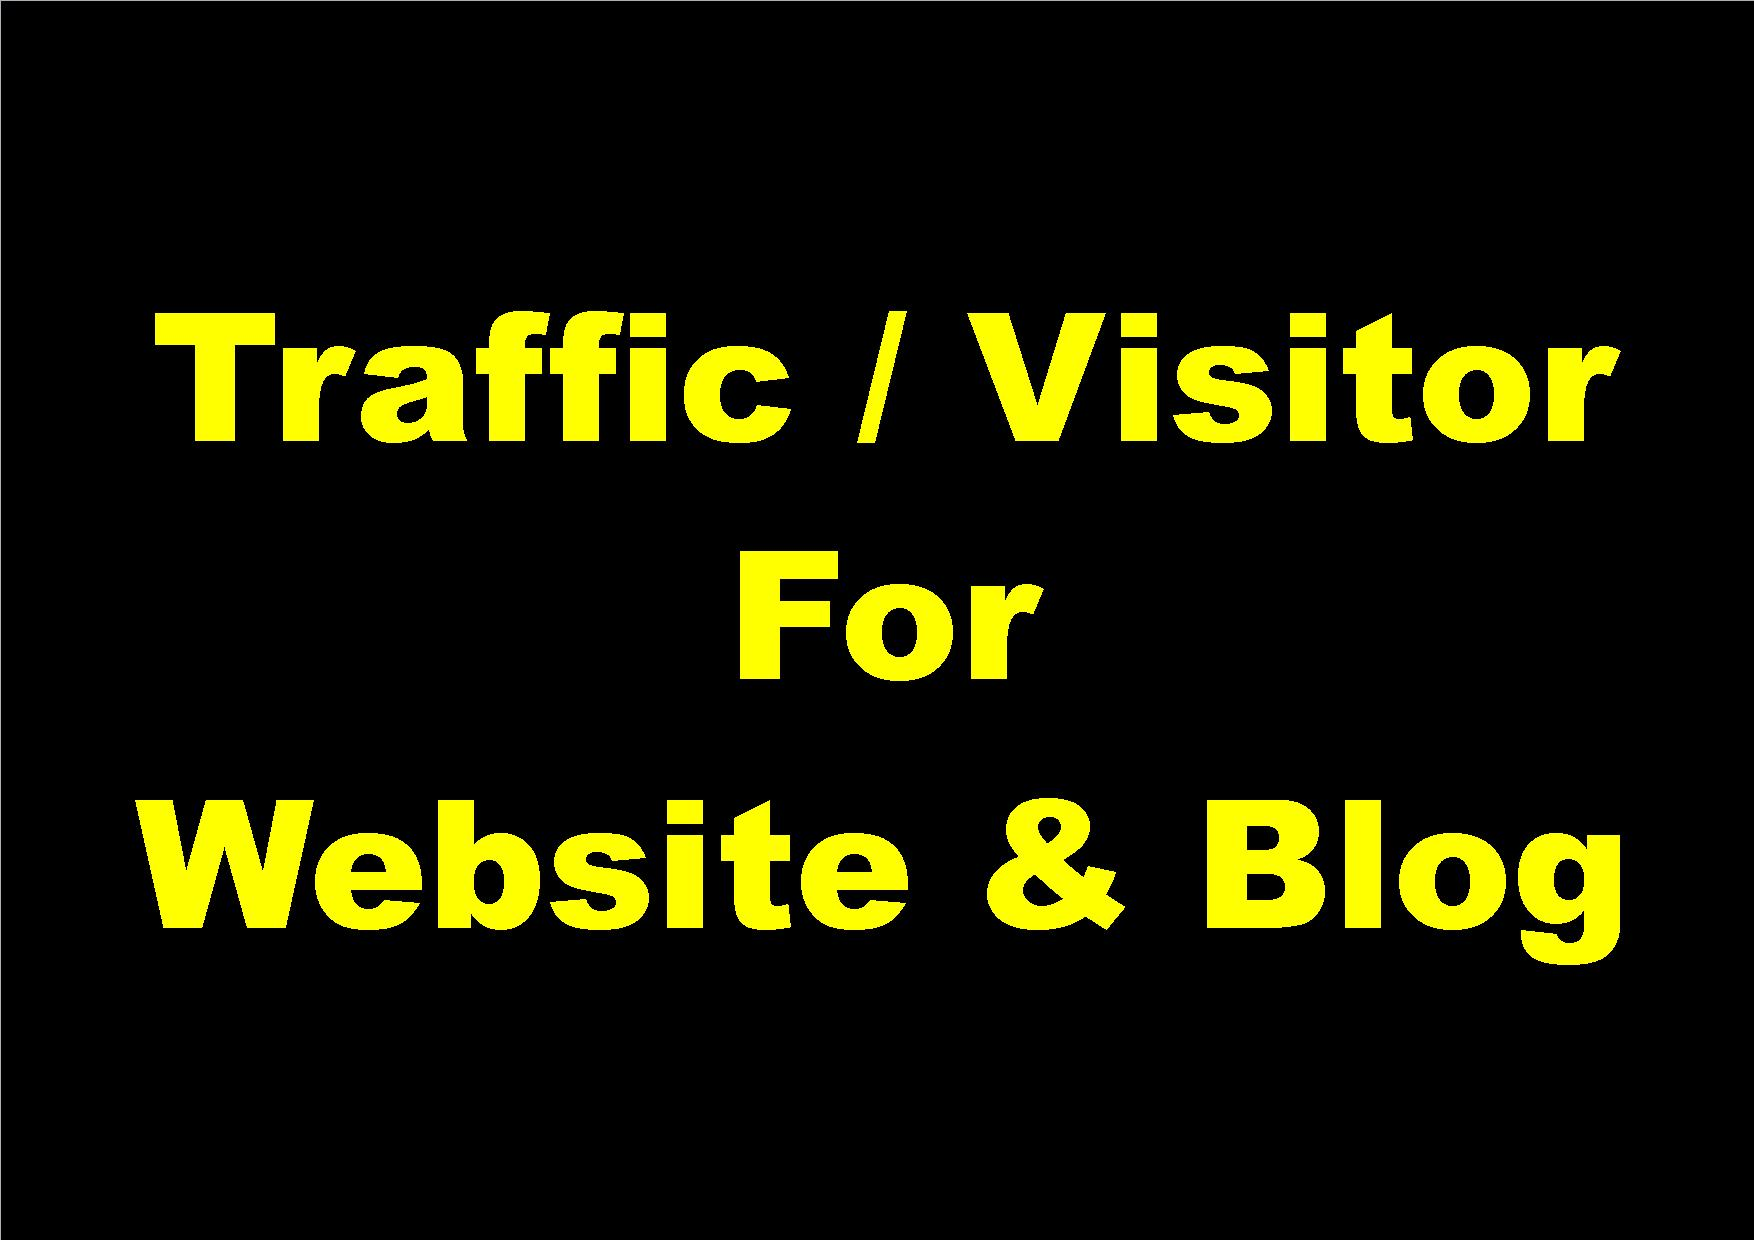 4,000+ Daily Visitors For 5 days for Website & Blog